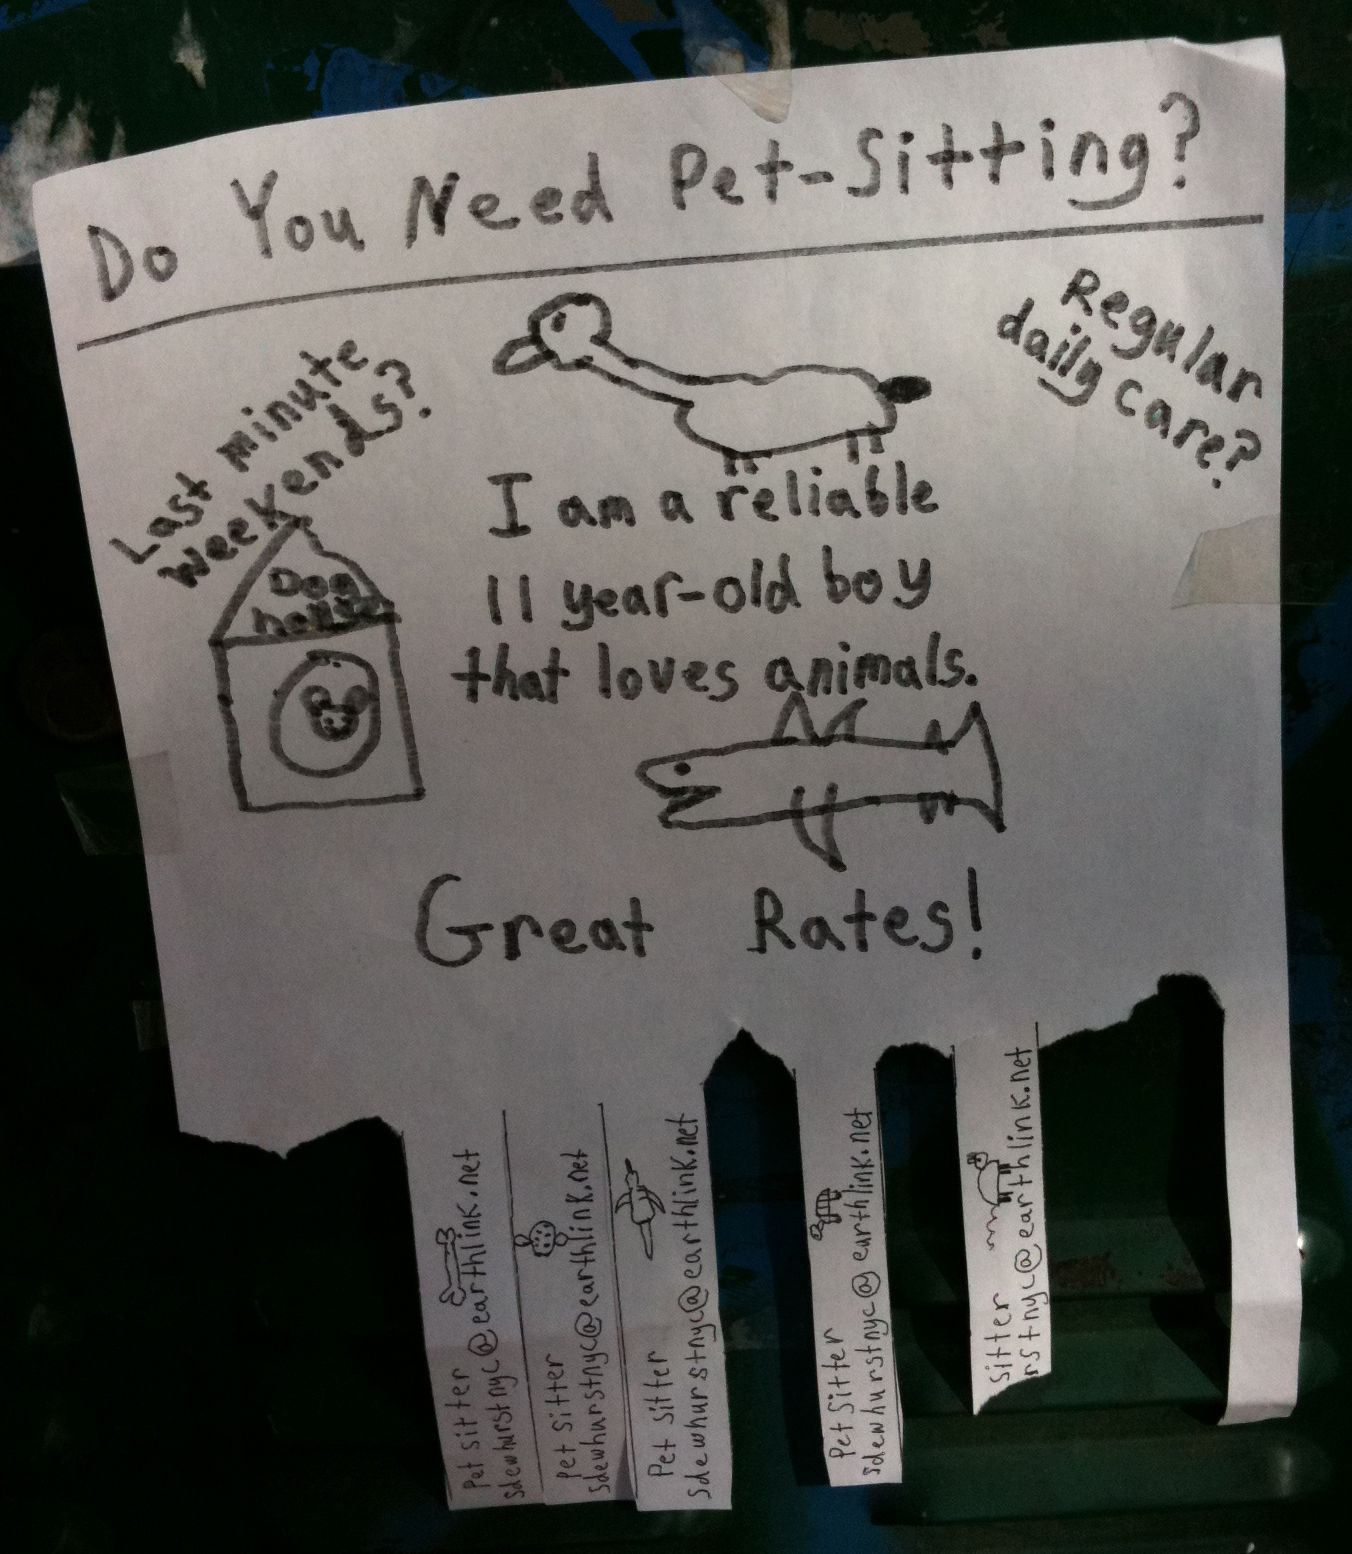 15 cool babysitting flyers 14 babysitting flyers pet sitting flyer court st brooklyn 2010